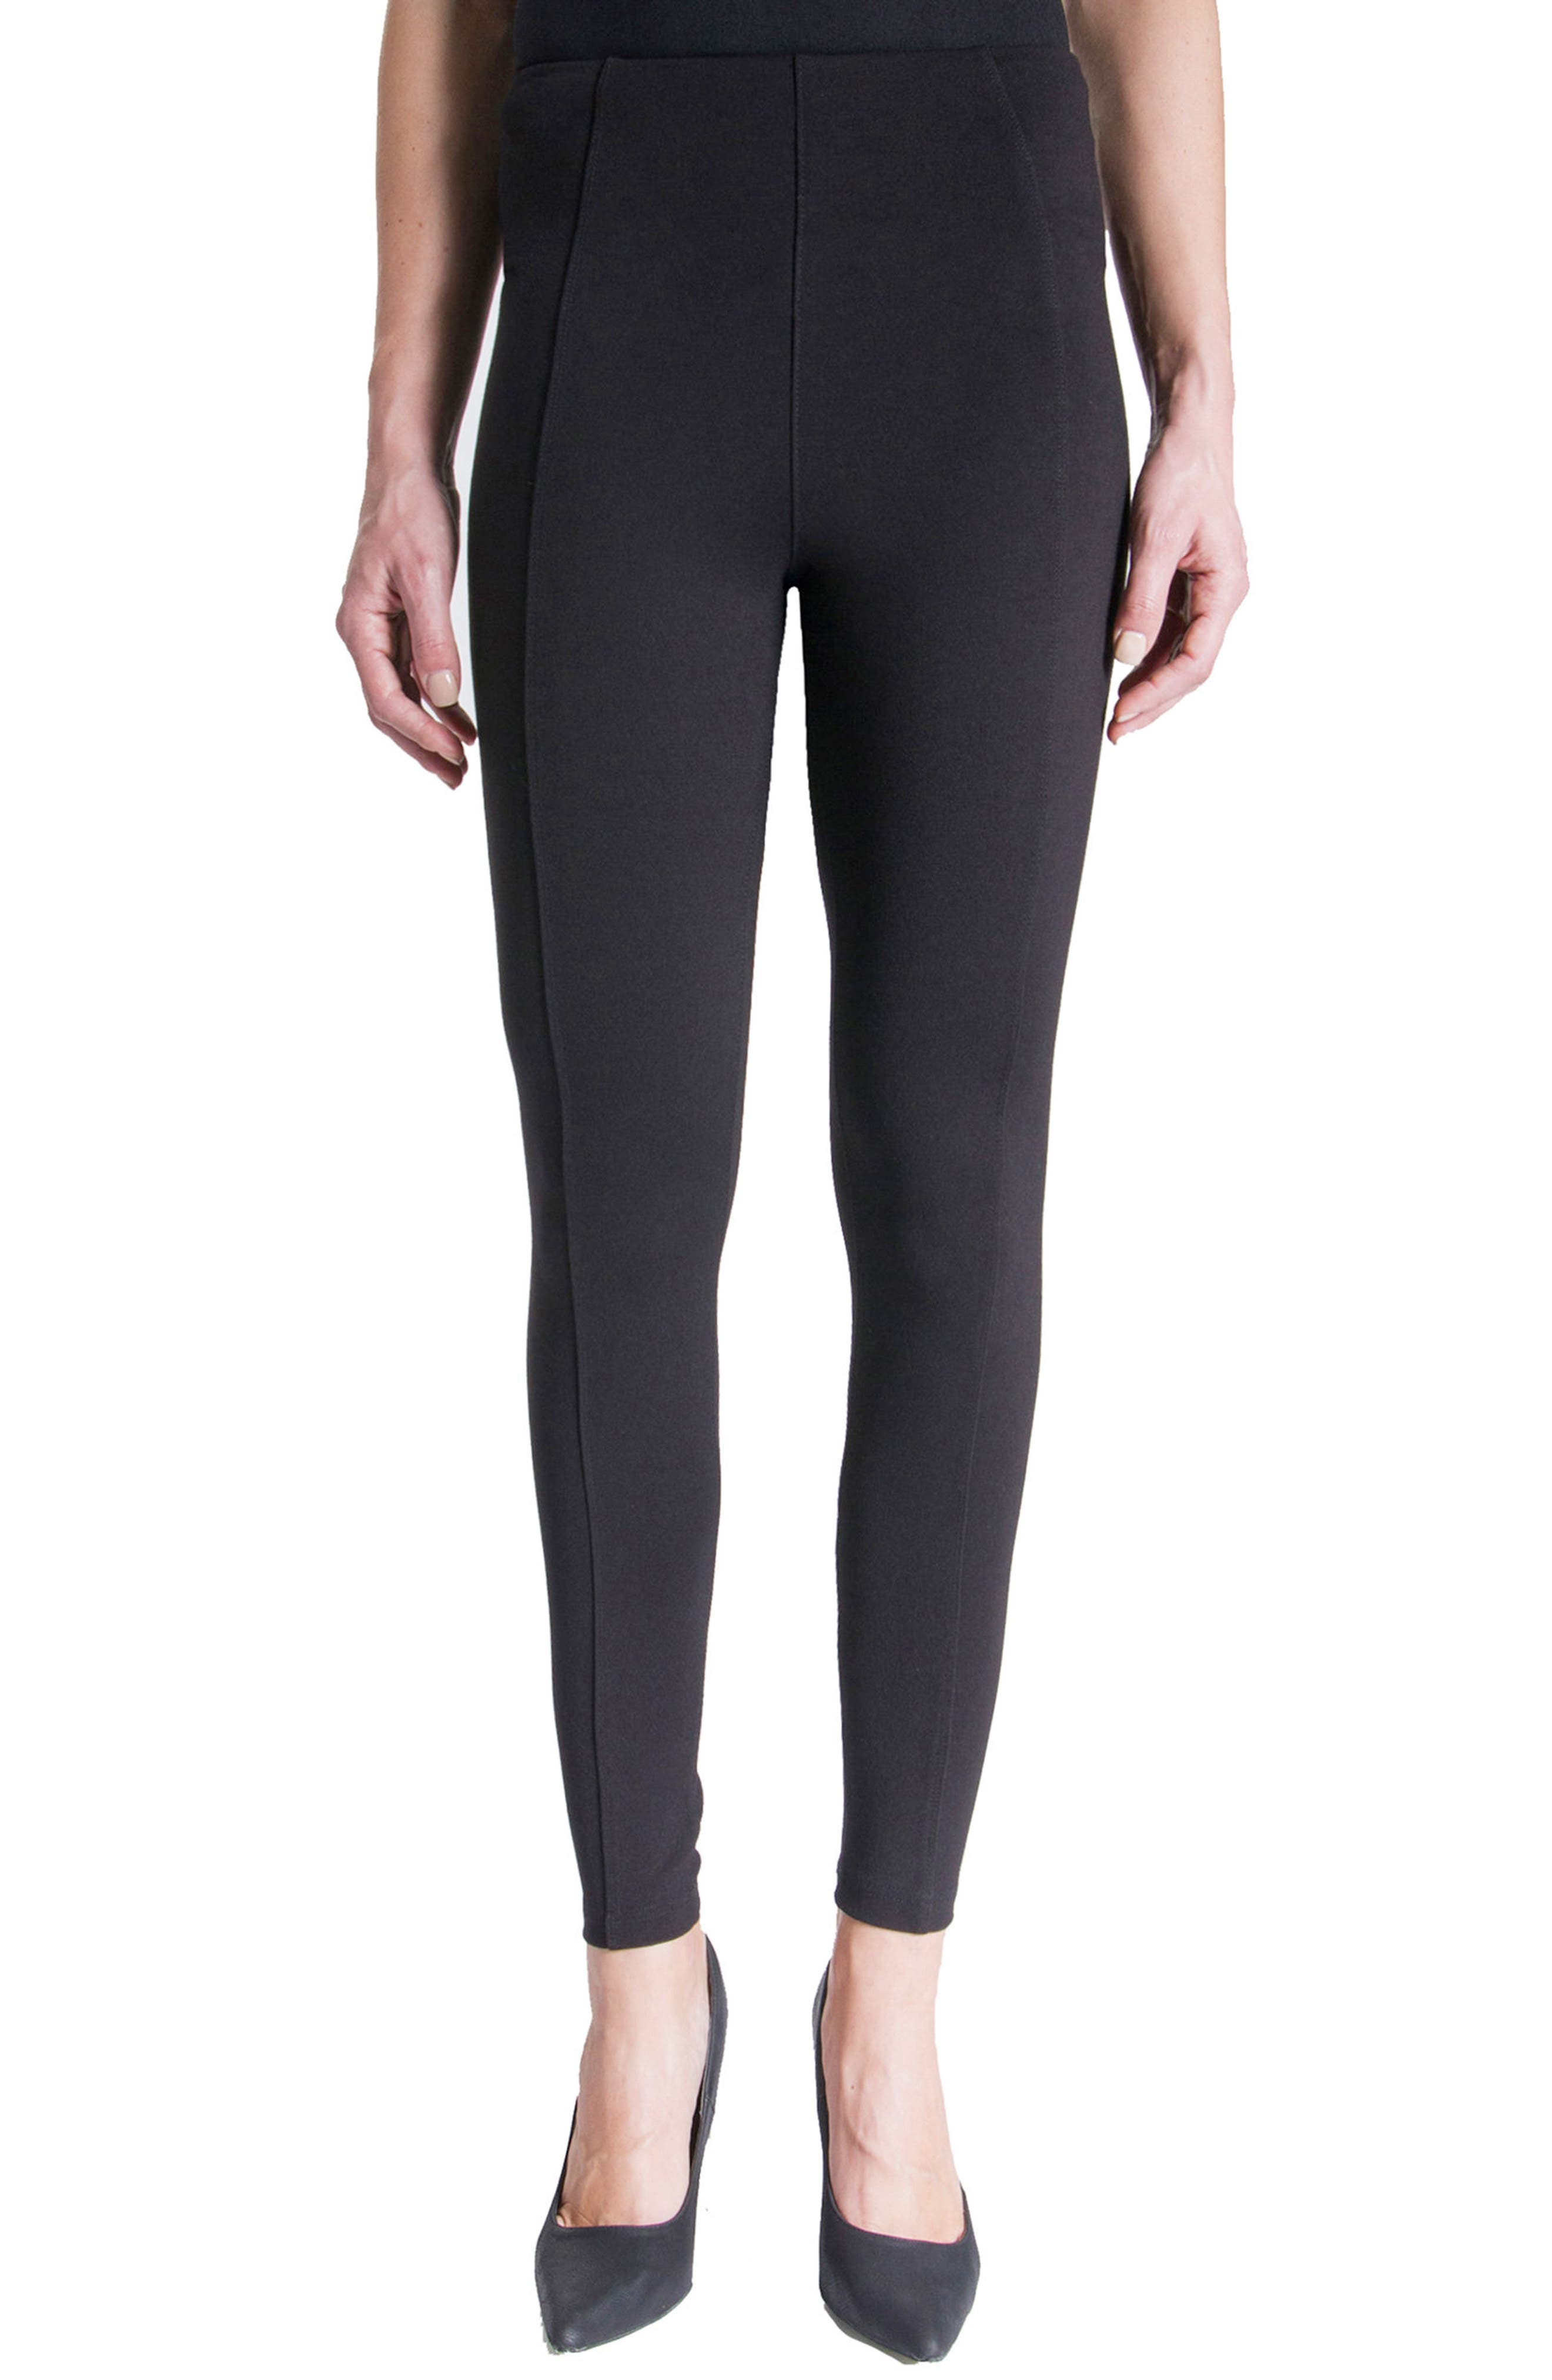 Liverpool Jeans Company Reese Stretch Knit Leggings (Petite)